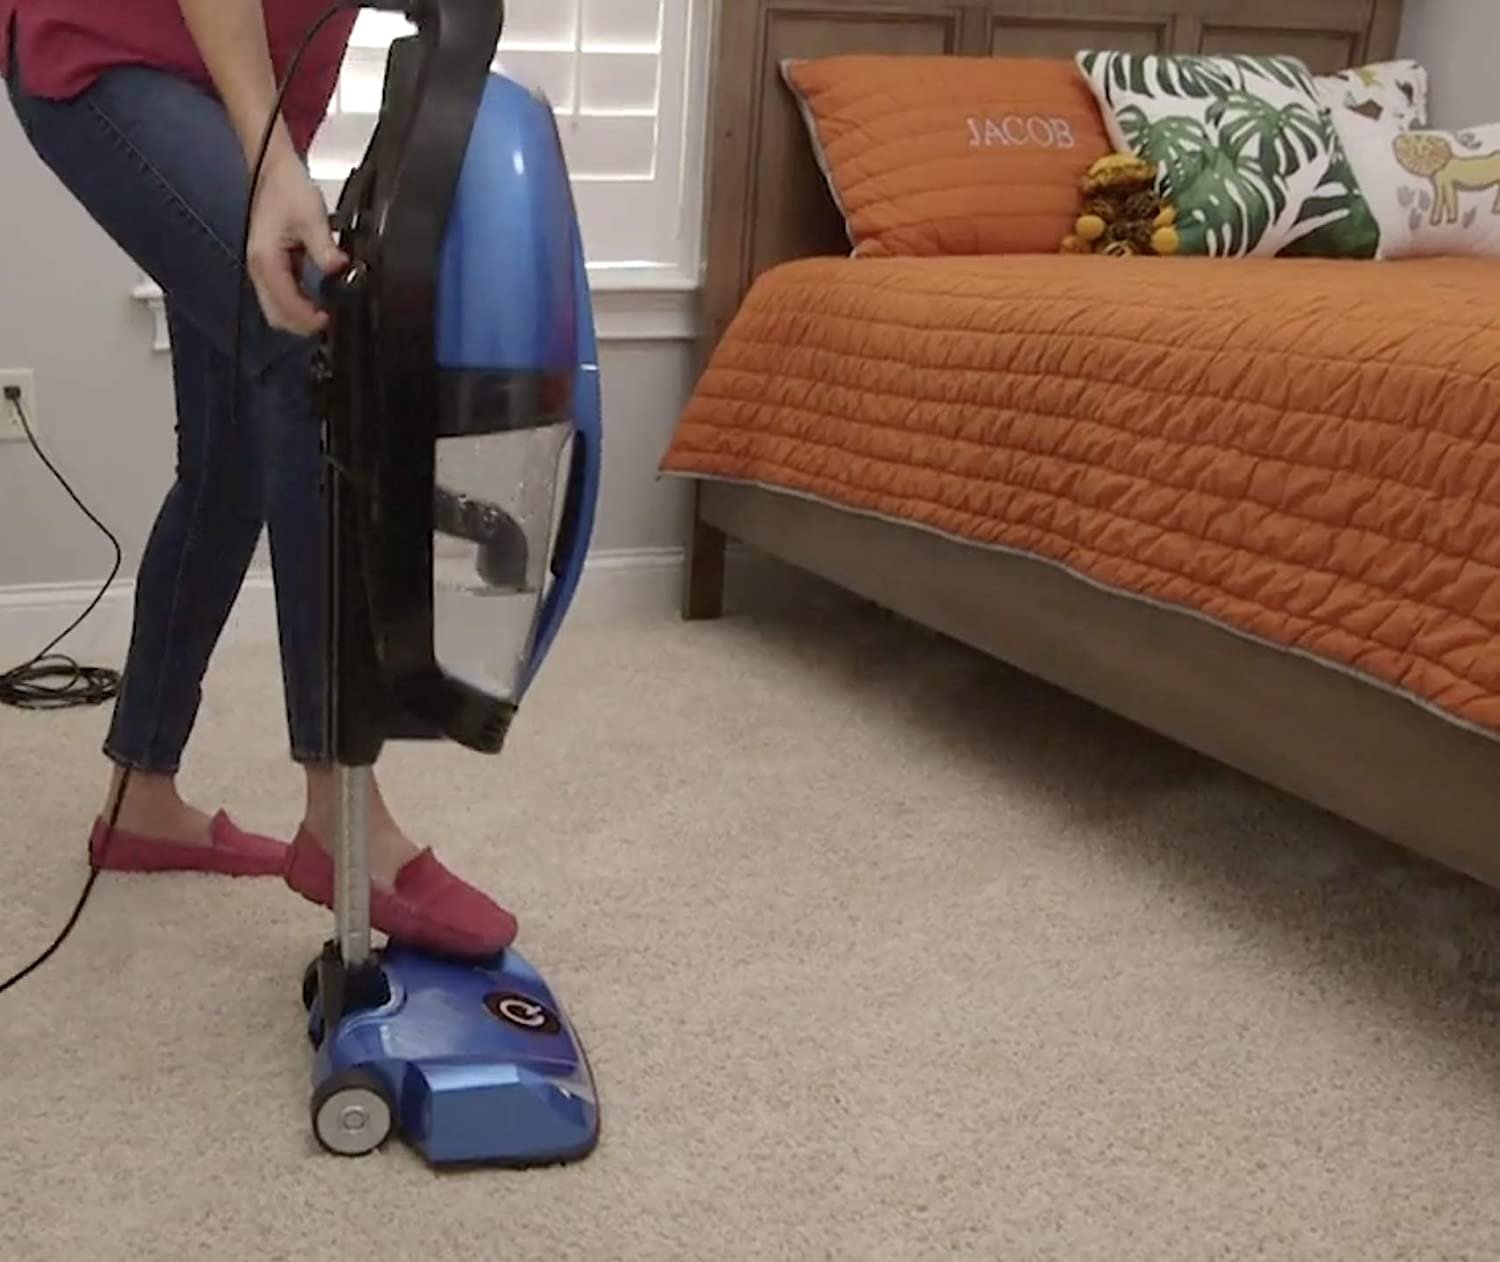 Telescopic Body Blue No Filters Quantum X Upright Water Vacuum Cleaner Pet Vacuum Cleaner and Picks Up Wet Spills New Technology